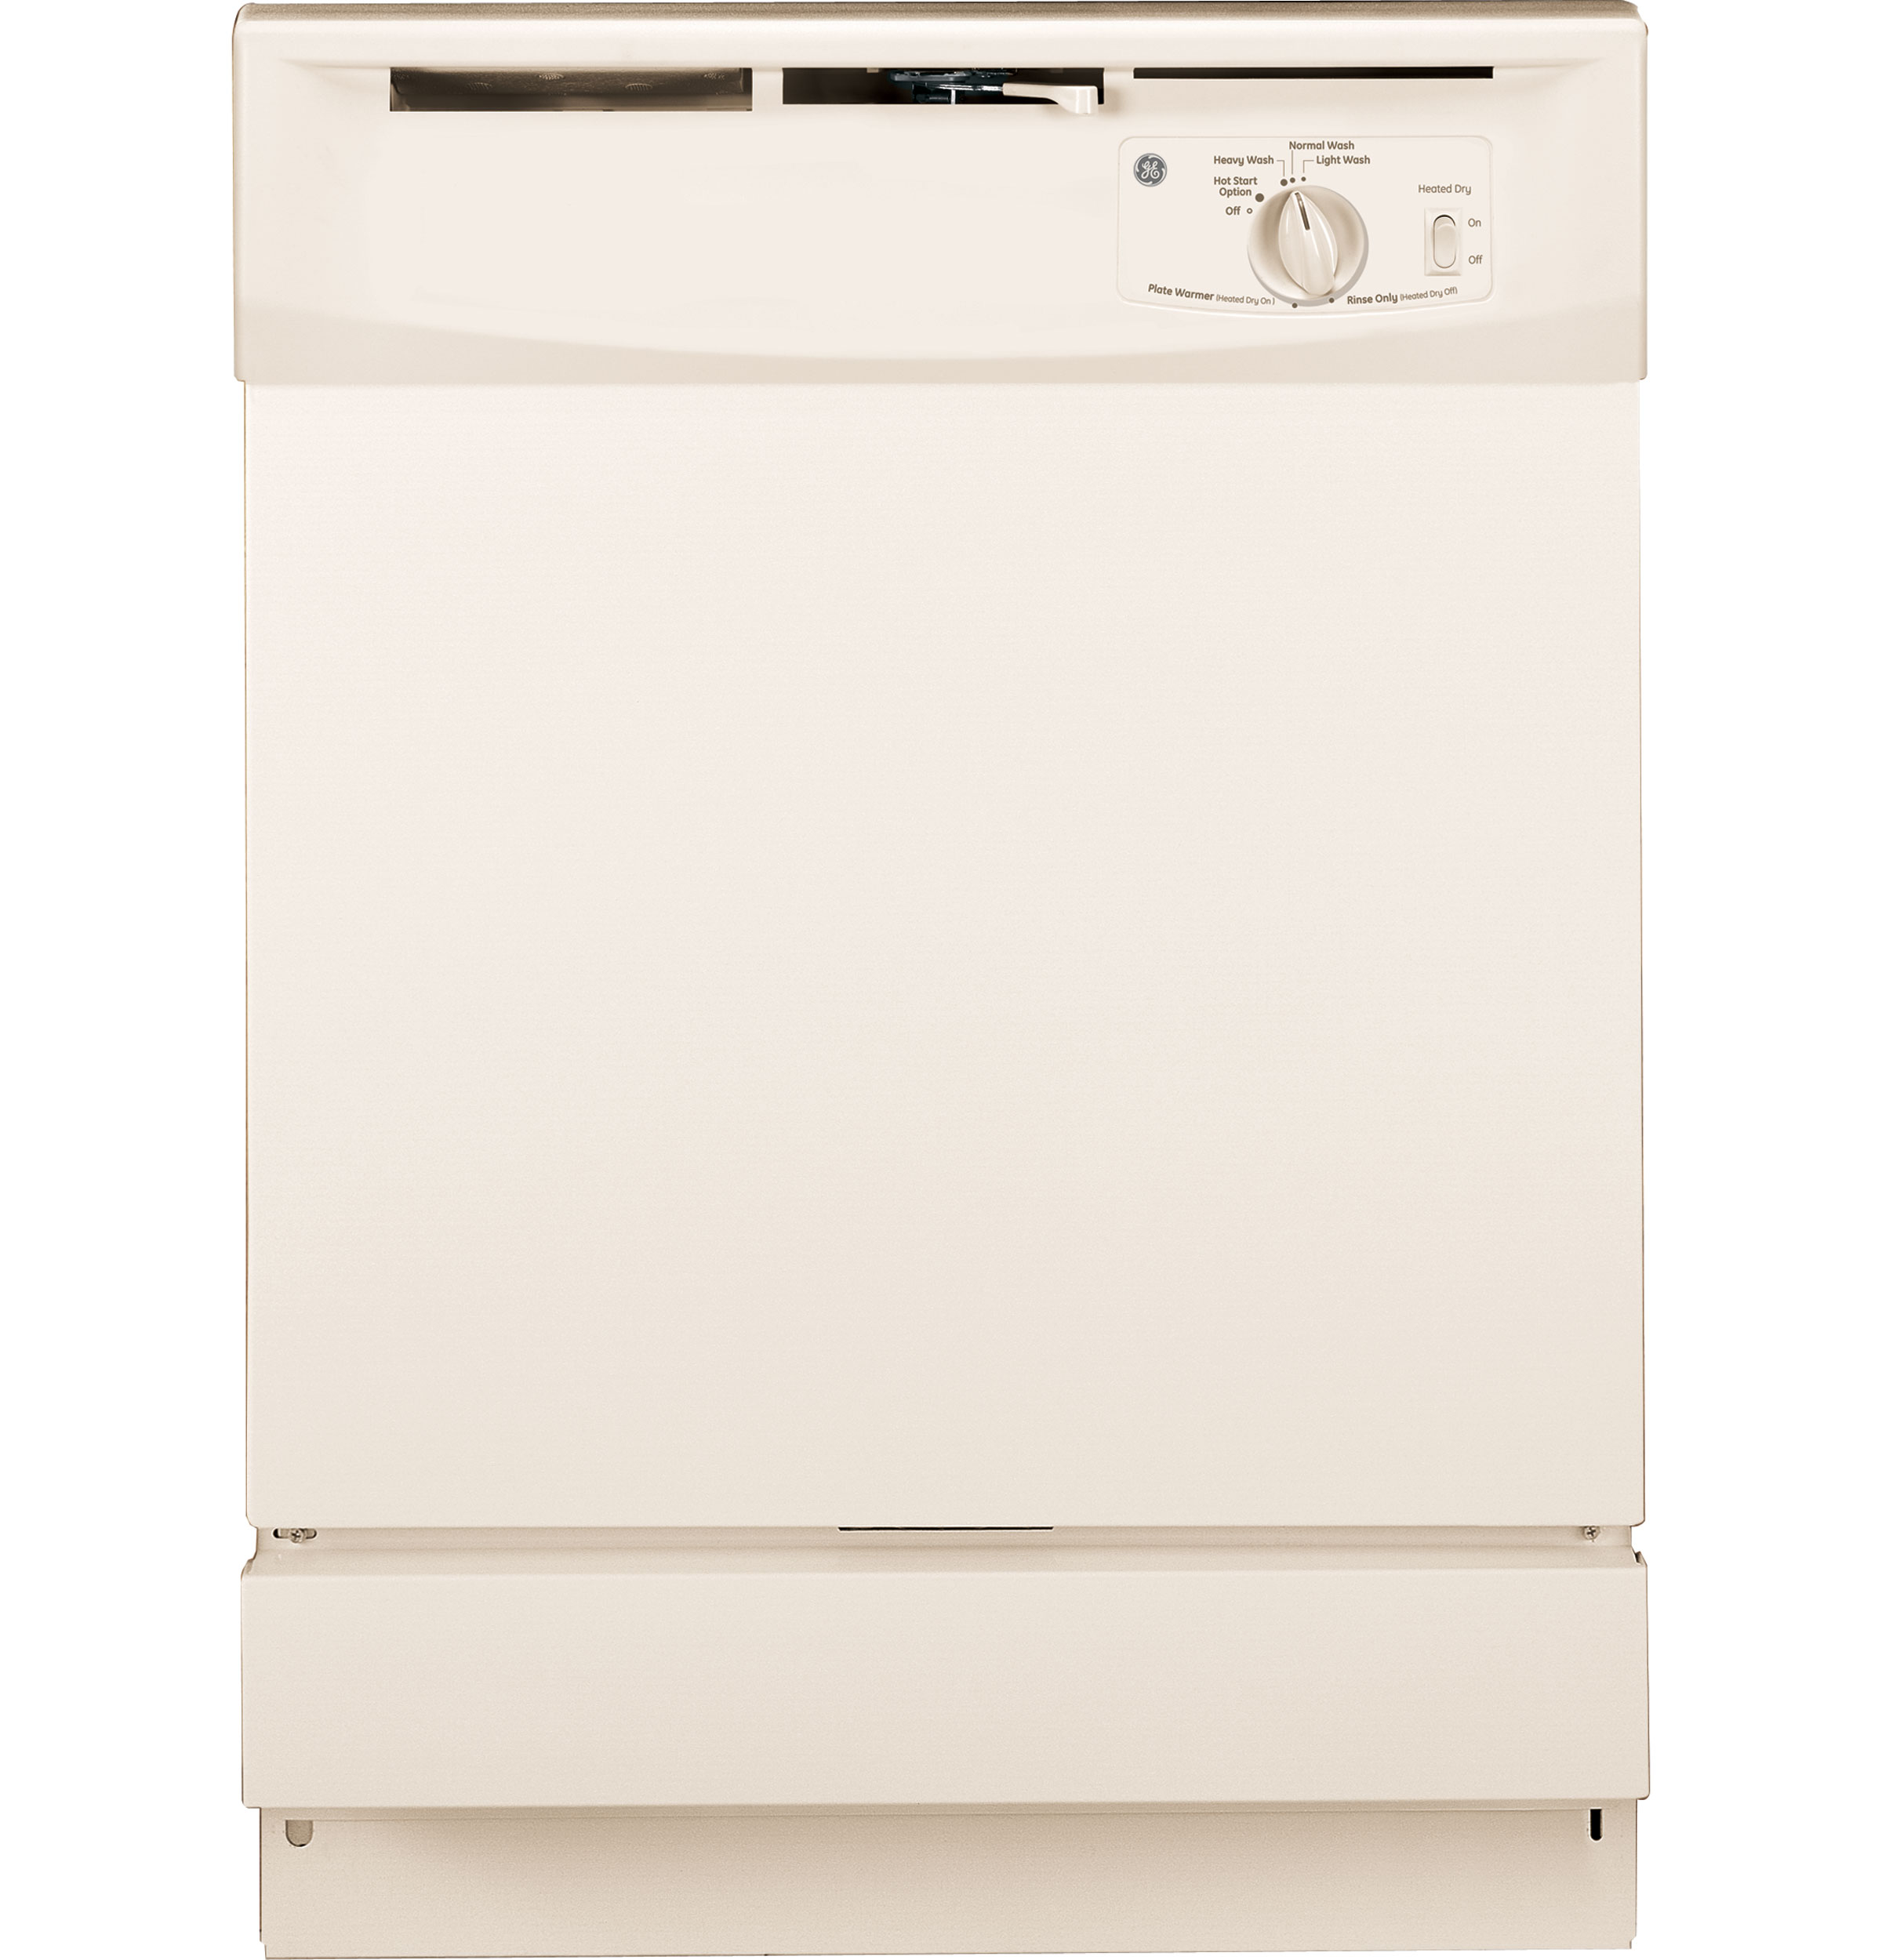 setting whynter portable dishwasher led white energystar star product cdw reviews place countertop energy